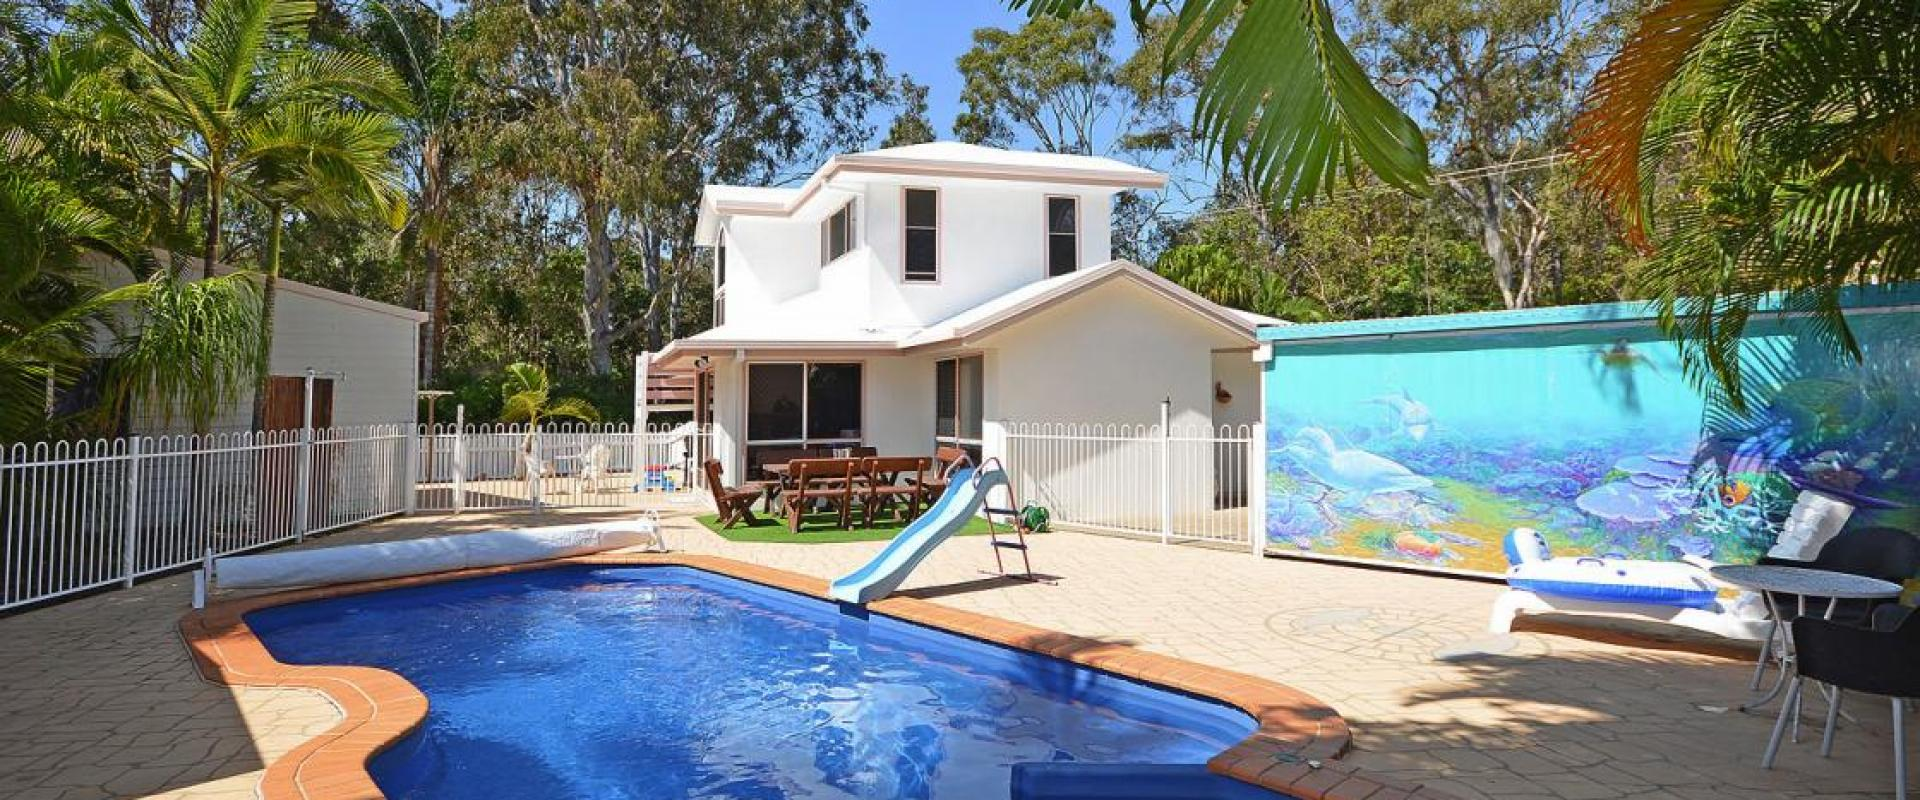 WALK TO THE WATER AND THE BEACH FROM THIS INDIVIDUAL AND SENSATIONAL COASTAL THREE BEDROOM FAMILY HOME, 6 x 6 GUEST ACCOMMODATION OR RELATIVE ANNEXE.